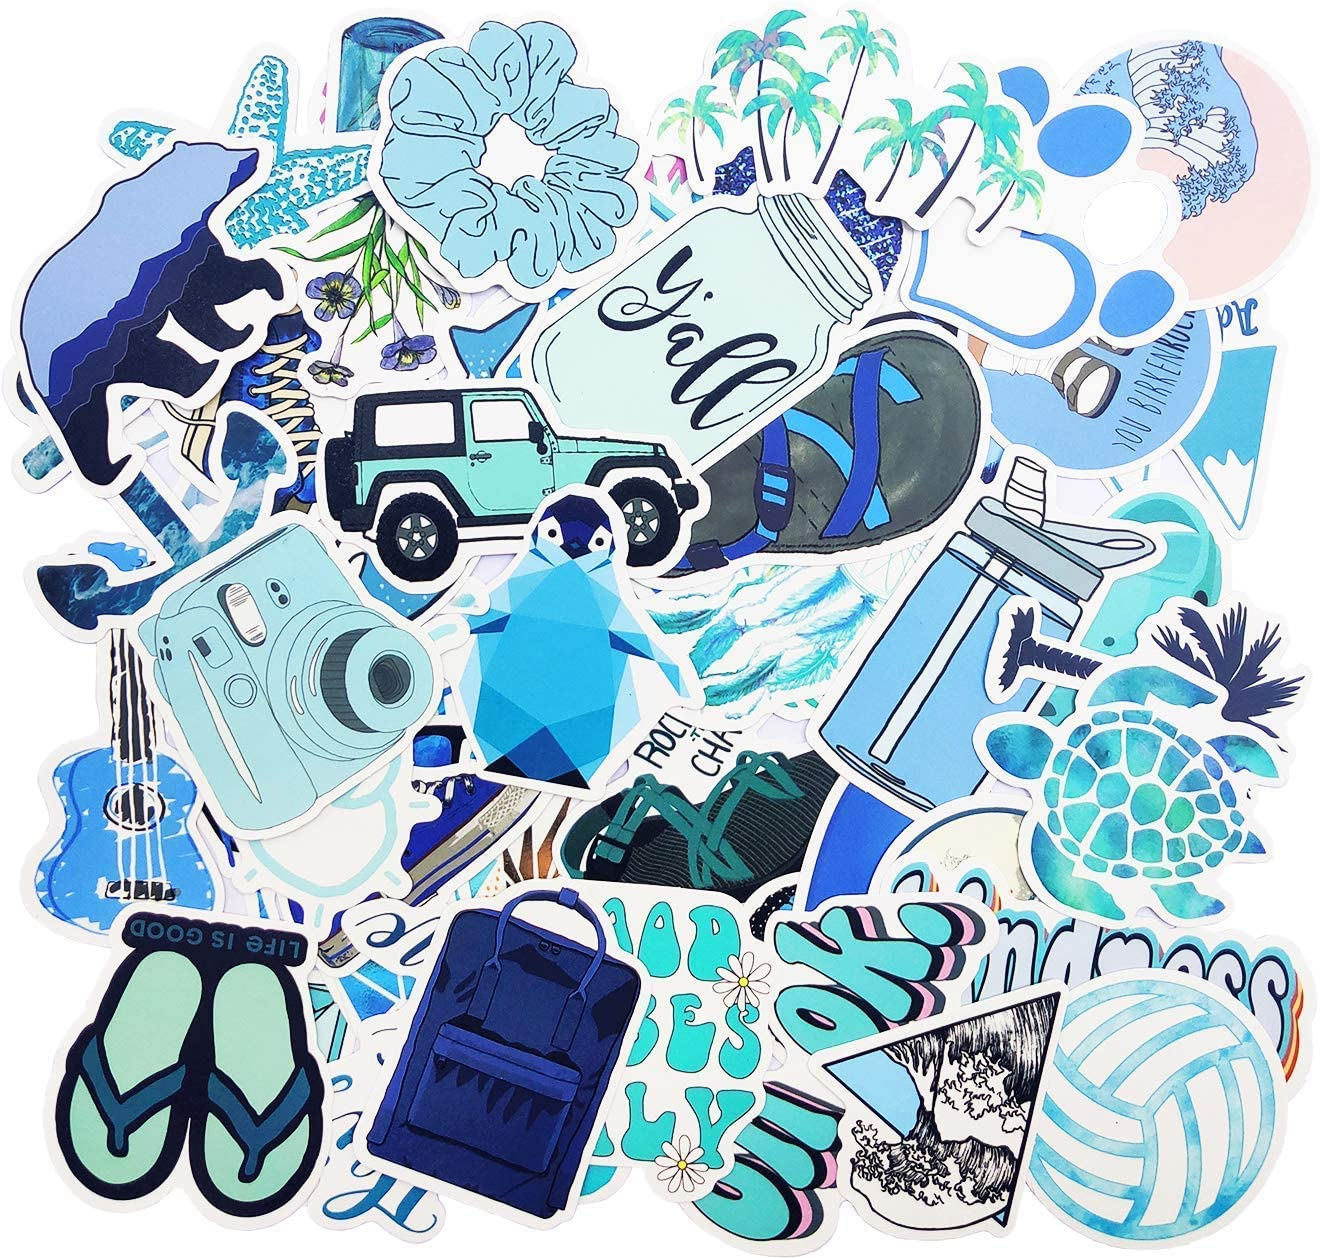 Blue Stickers for Water Bottle Trendy Teen Girls Laptop Hydroflasks Phone Car Bumper Computer Skateboard Decals Beach Theme with Turtle Pineapple Coconut Tree Design- 50pcs